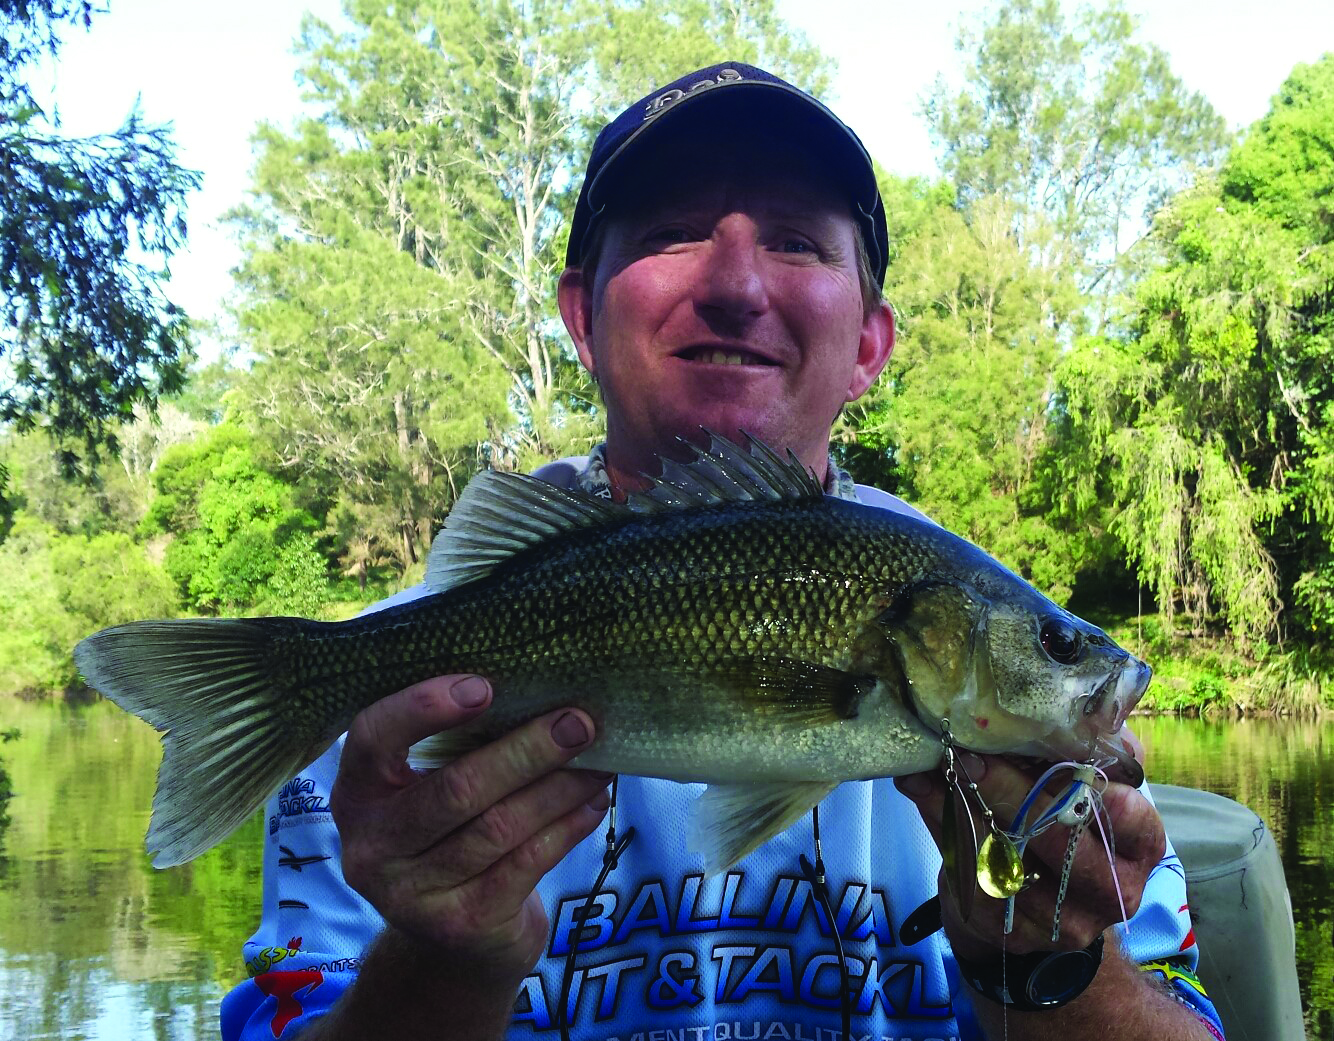 Another: This bass fell for a spinnerbait.